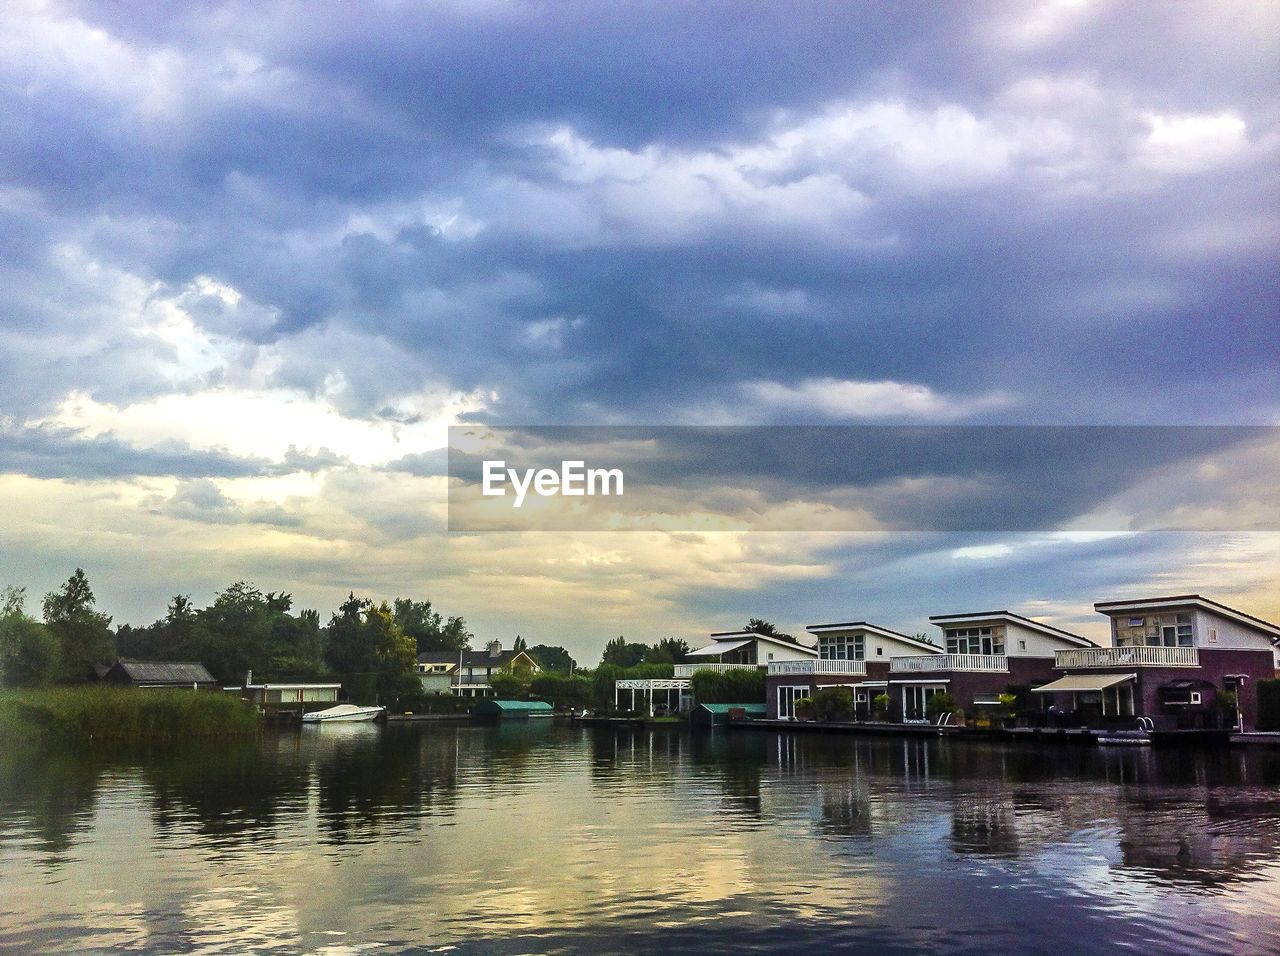 water, sky, architecture, built structure, building exterior, cloud - sky, house, no people, tranquility, reflection, outdoors, tree, tranquil scene, nature, waterfront, lake, day, scenics, beauty in nature